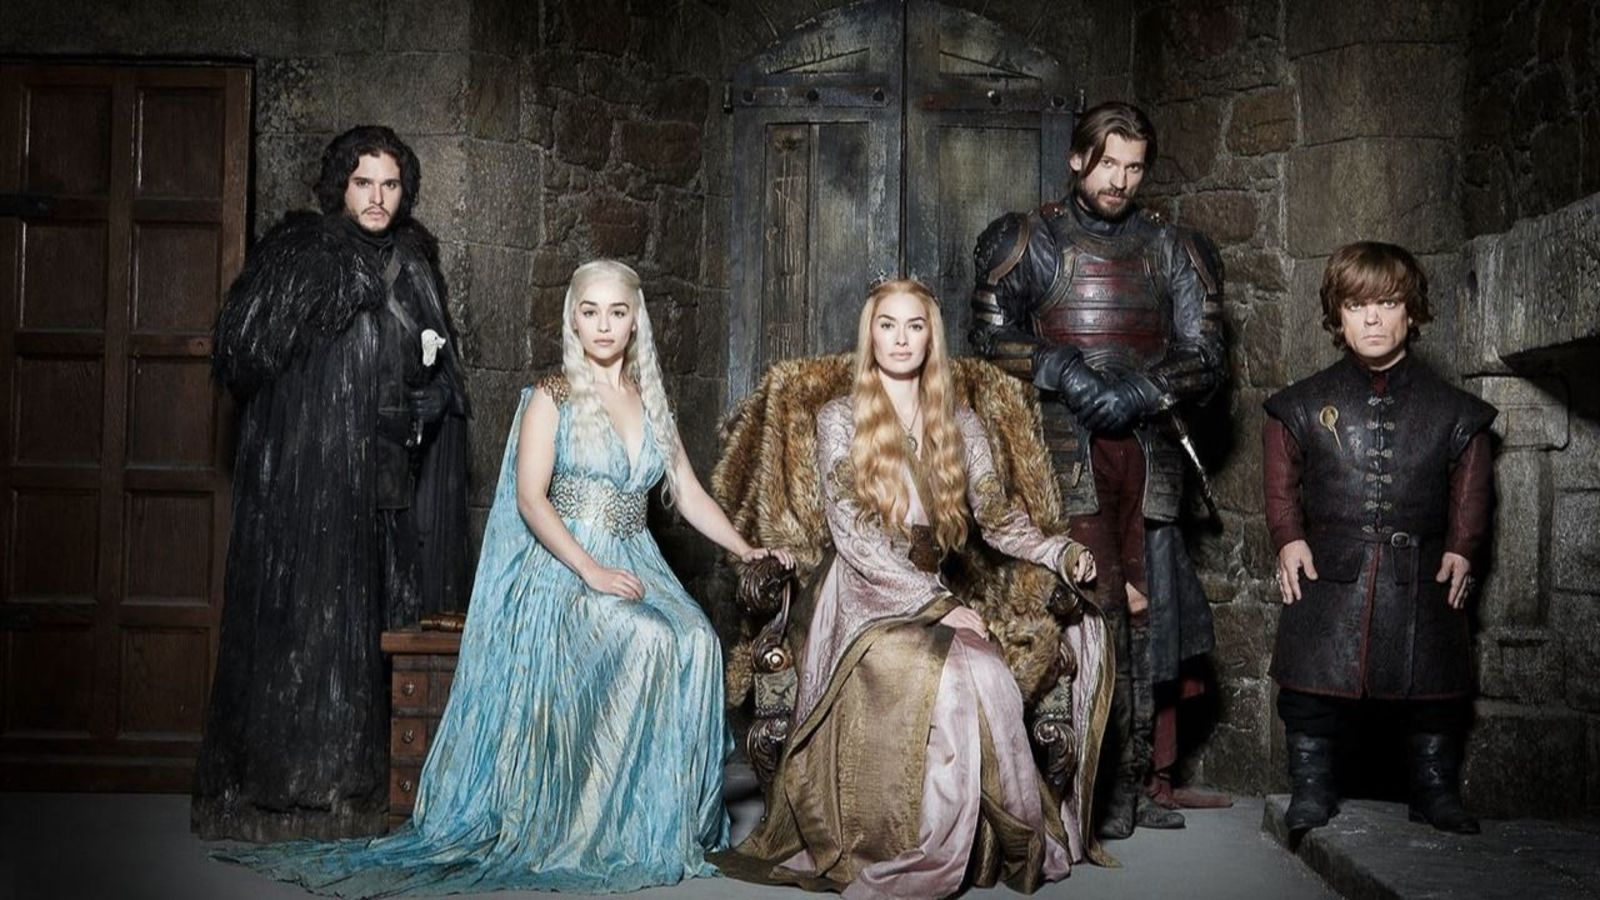 Final de Game of Thrones serán películas